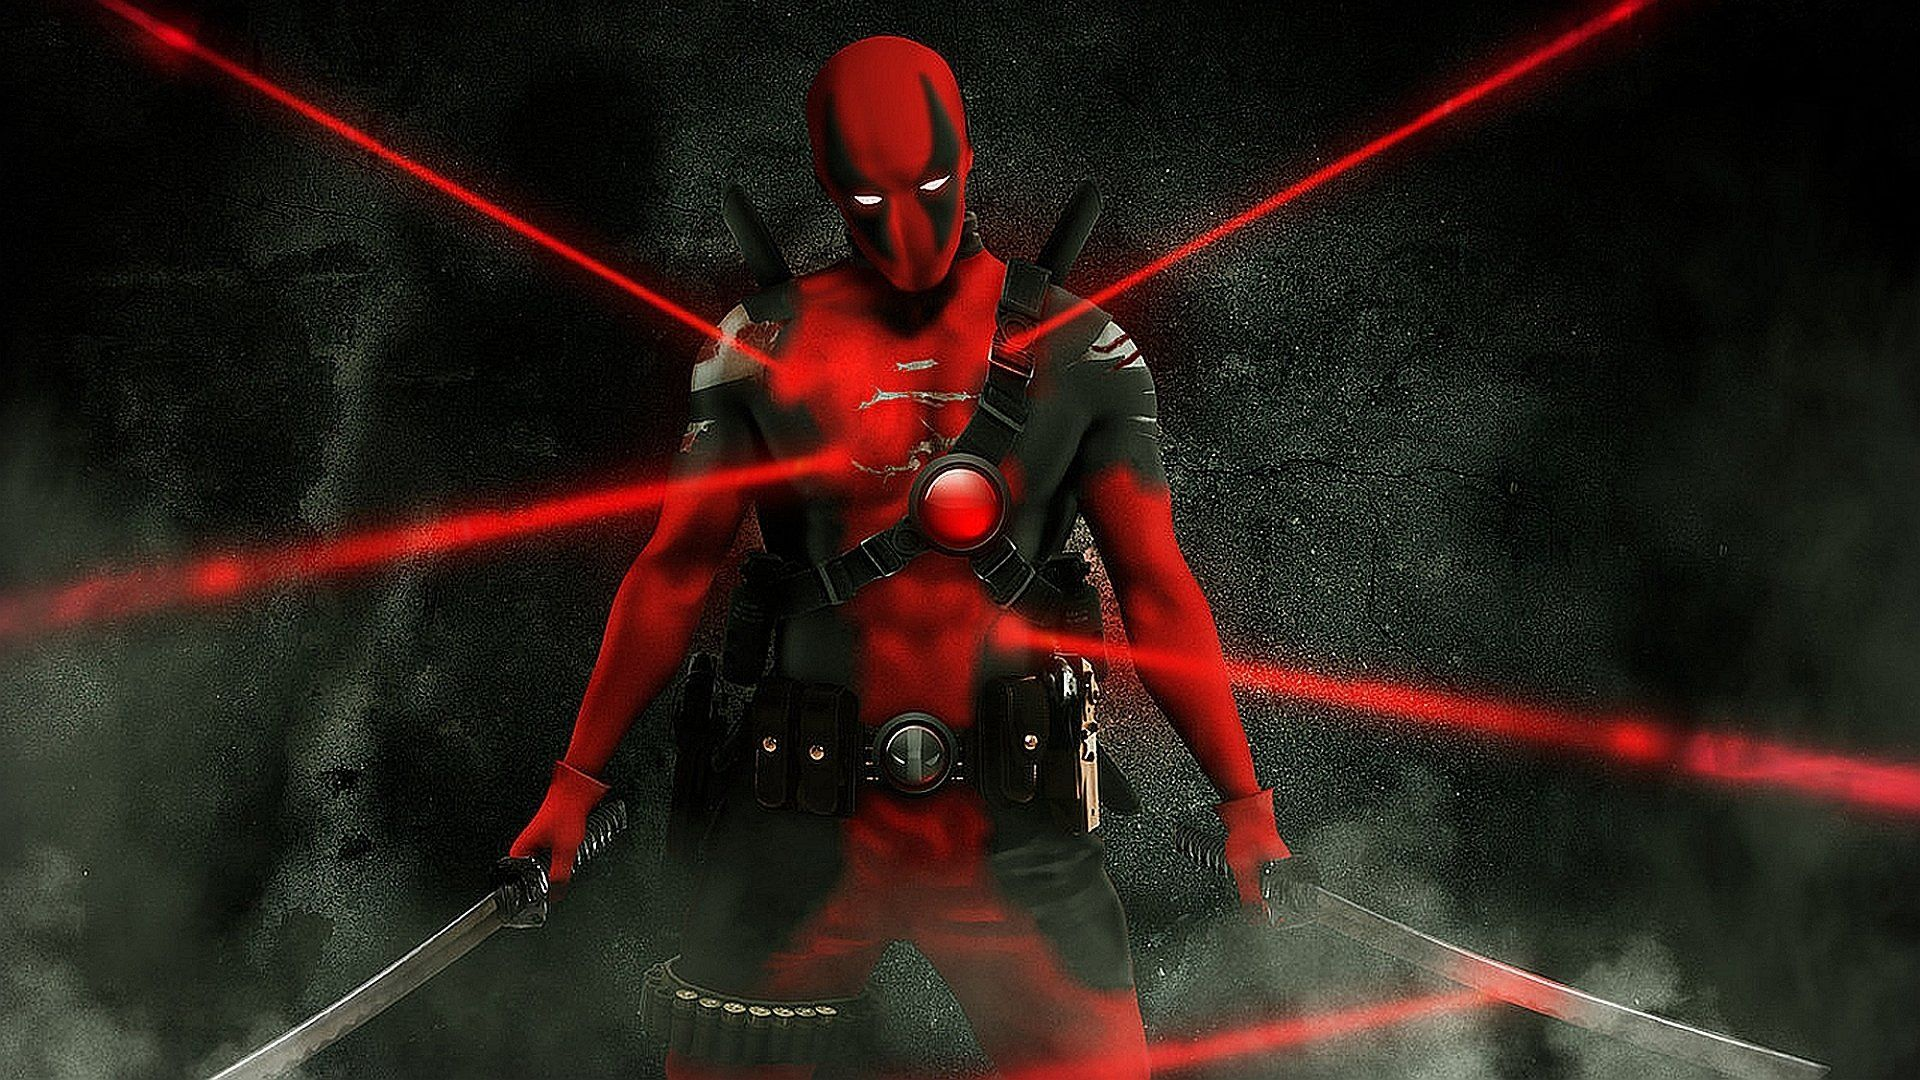 Deadpool Pc Wallpapers Top Free Deadpool Pc Backgrounds